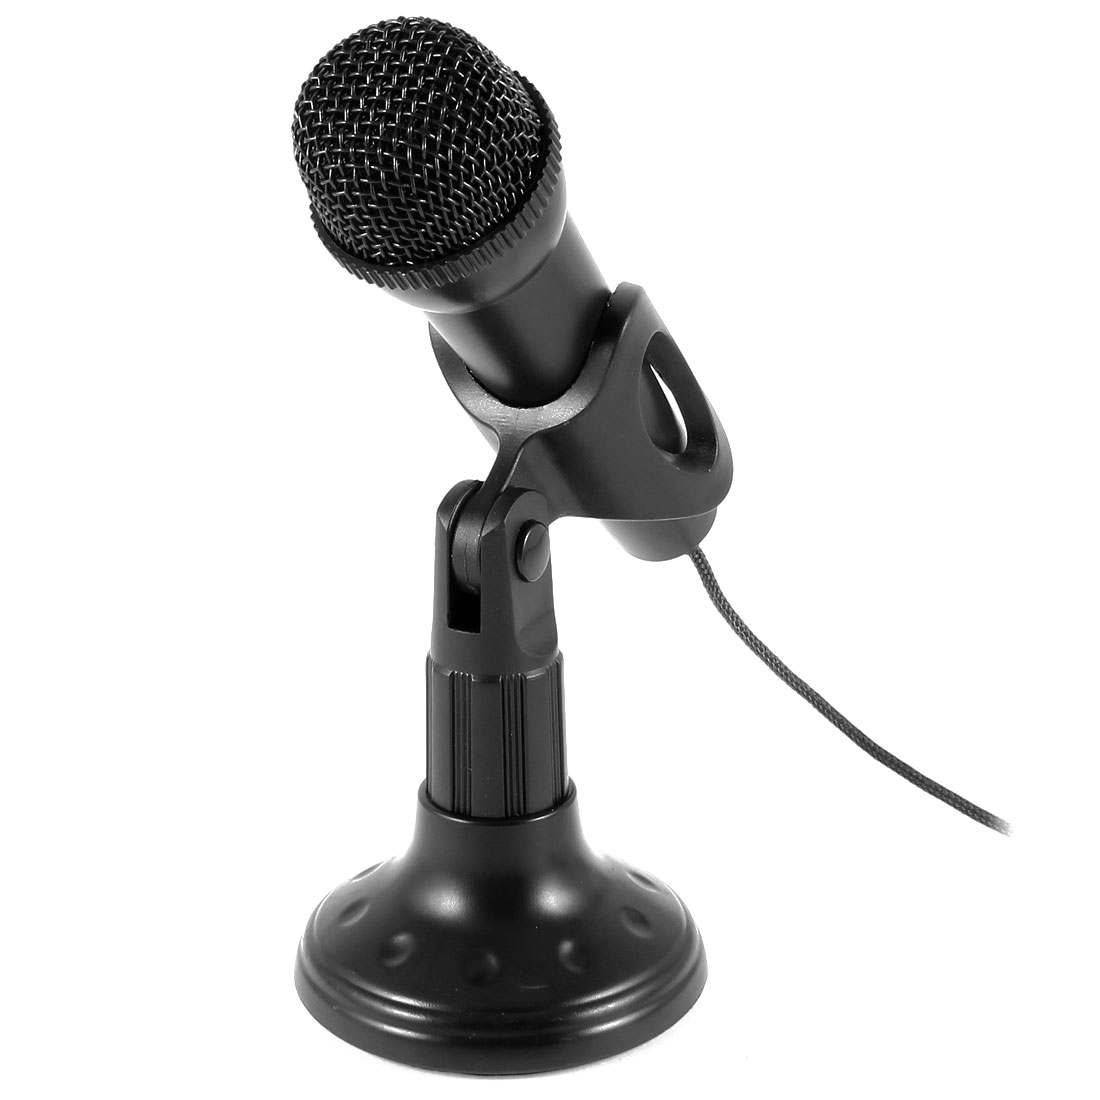 Mini 3.5mm Stereo Studio Speech Microphone Mic w Stand Mount Black for PC Laptop